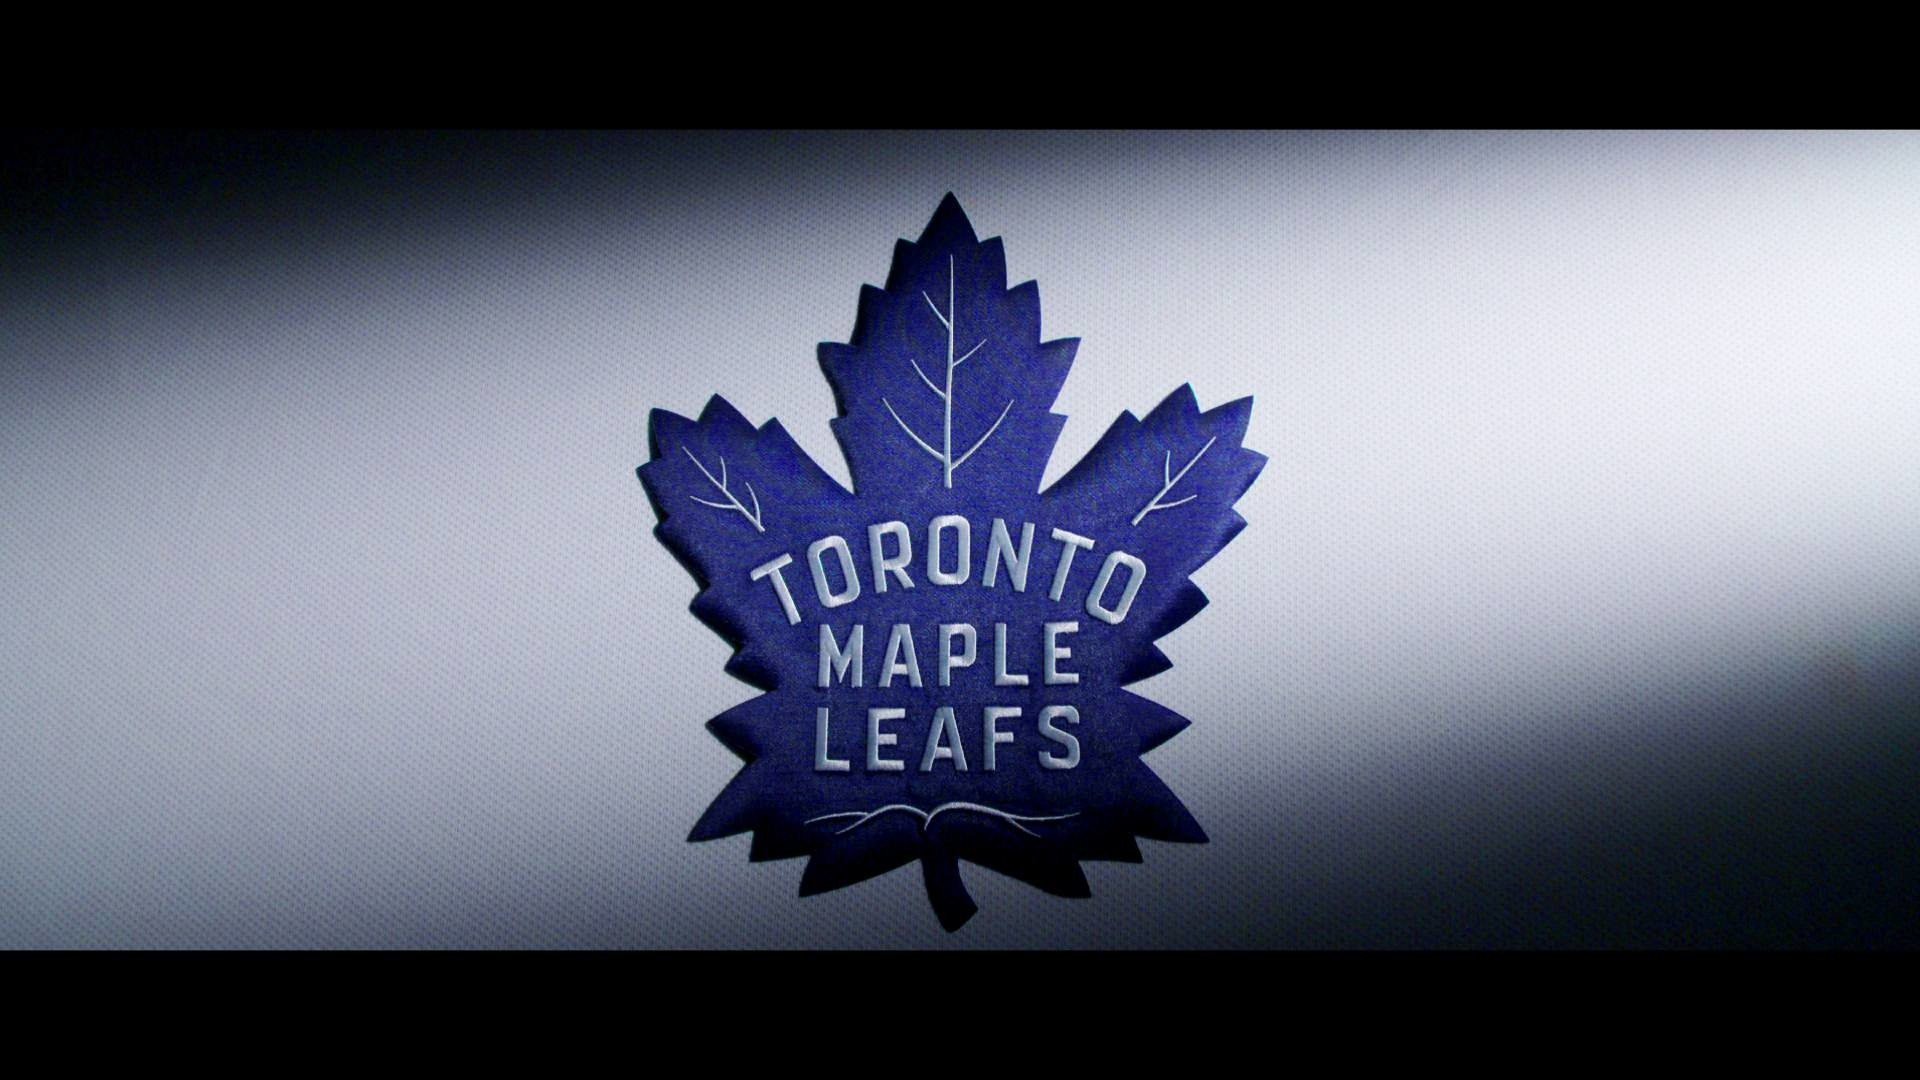 Toronto Maple Leafs Nhl Ipad Wallpapers